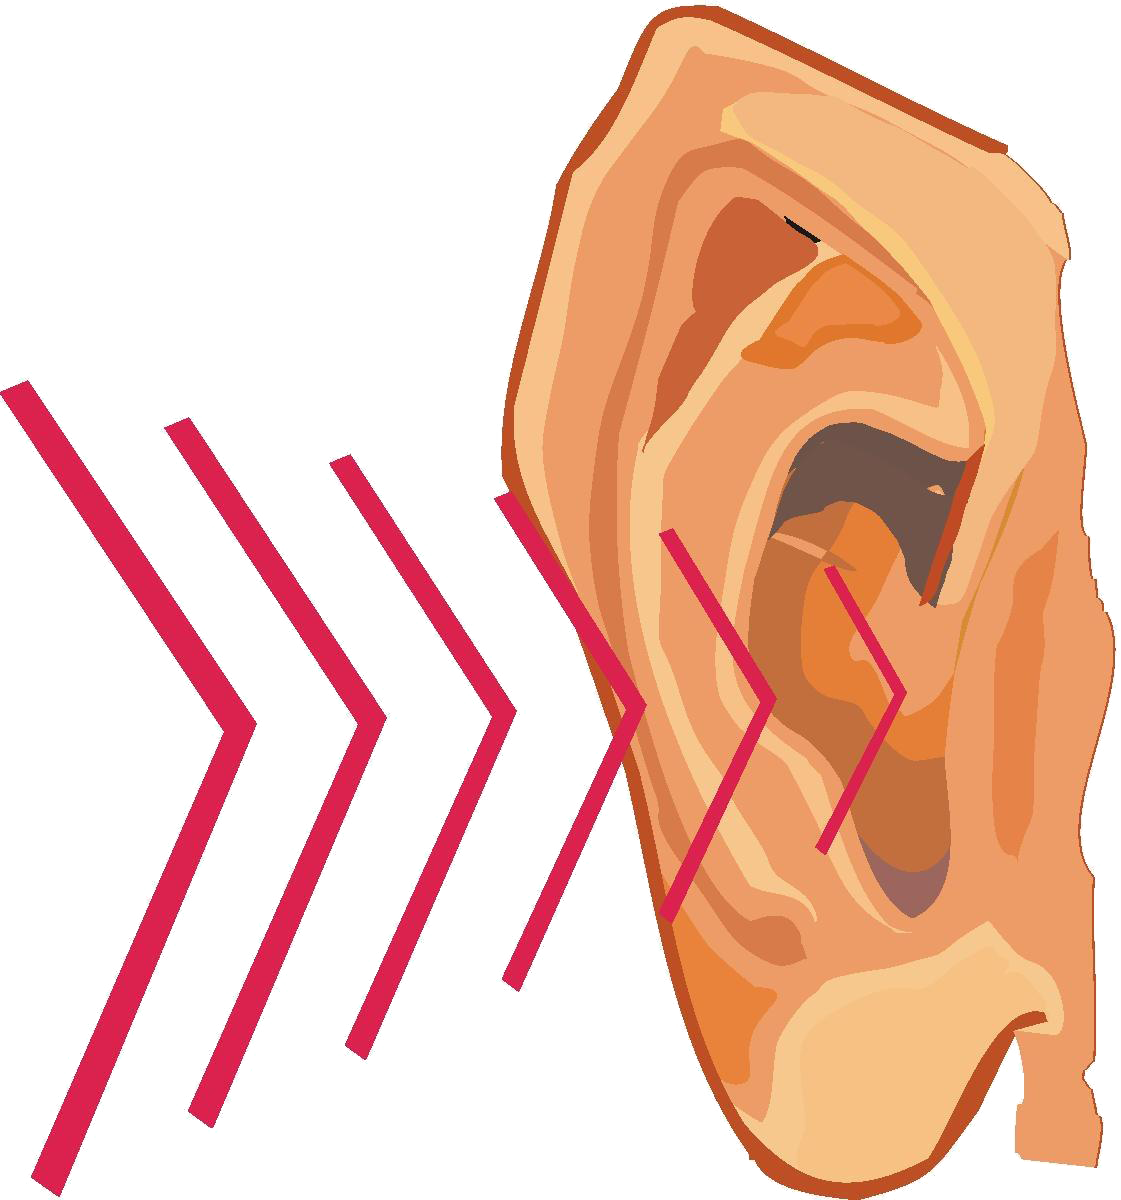 Waves clipart noise.  collection of ear